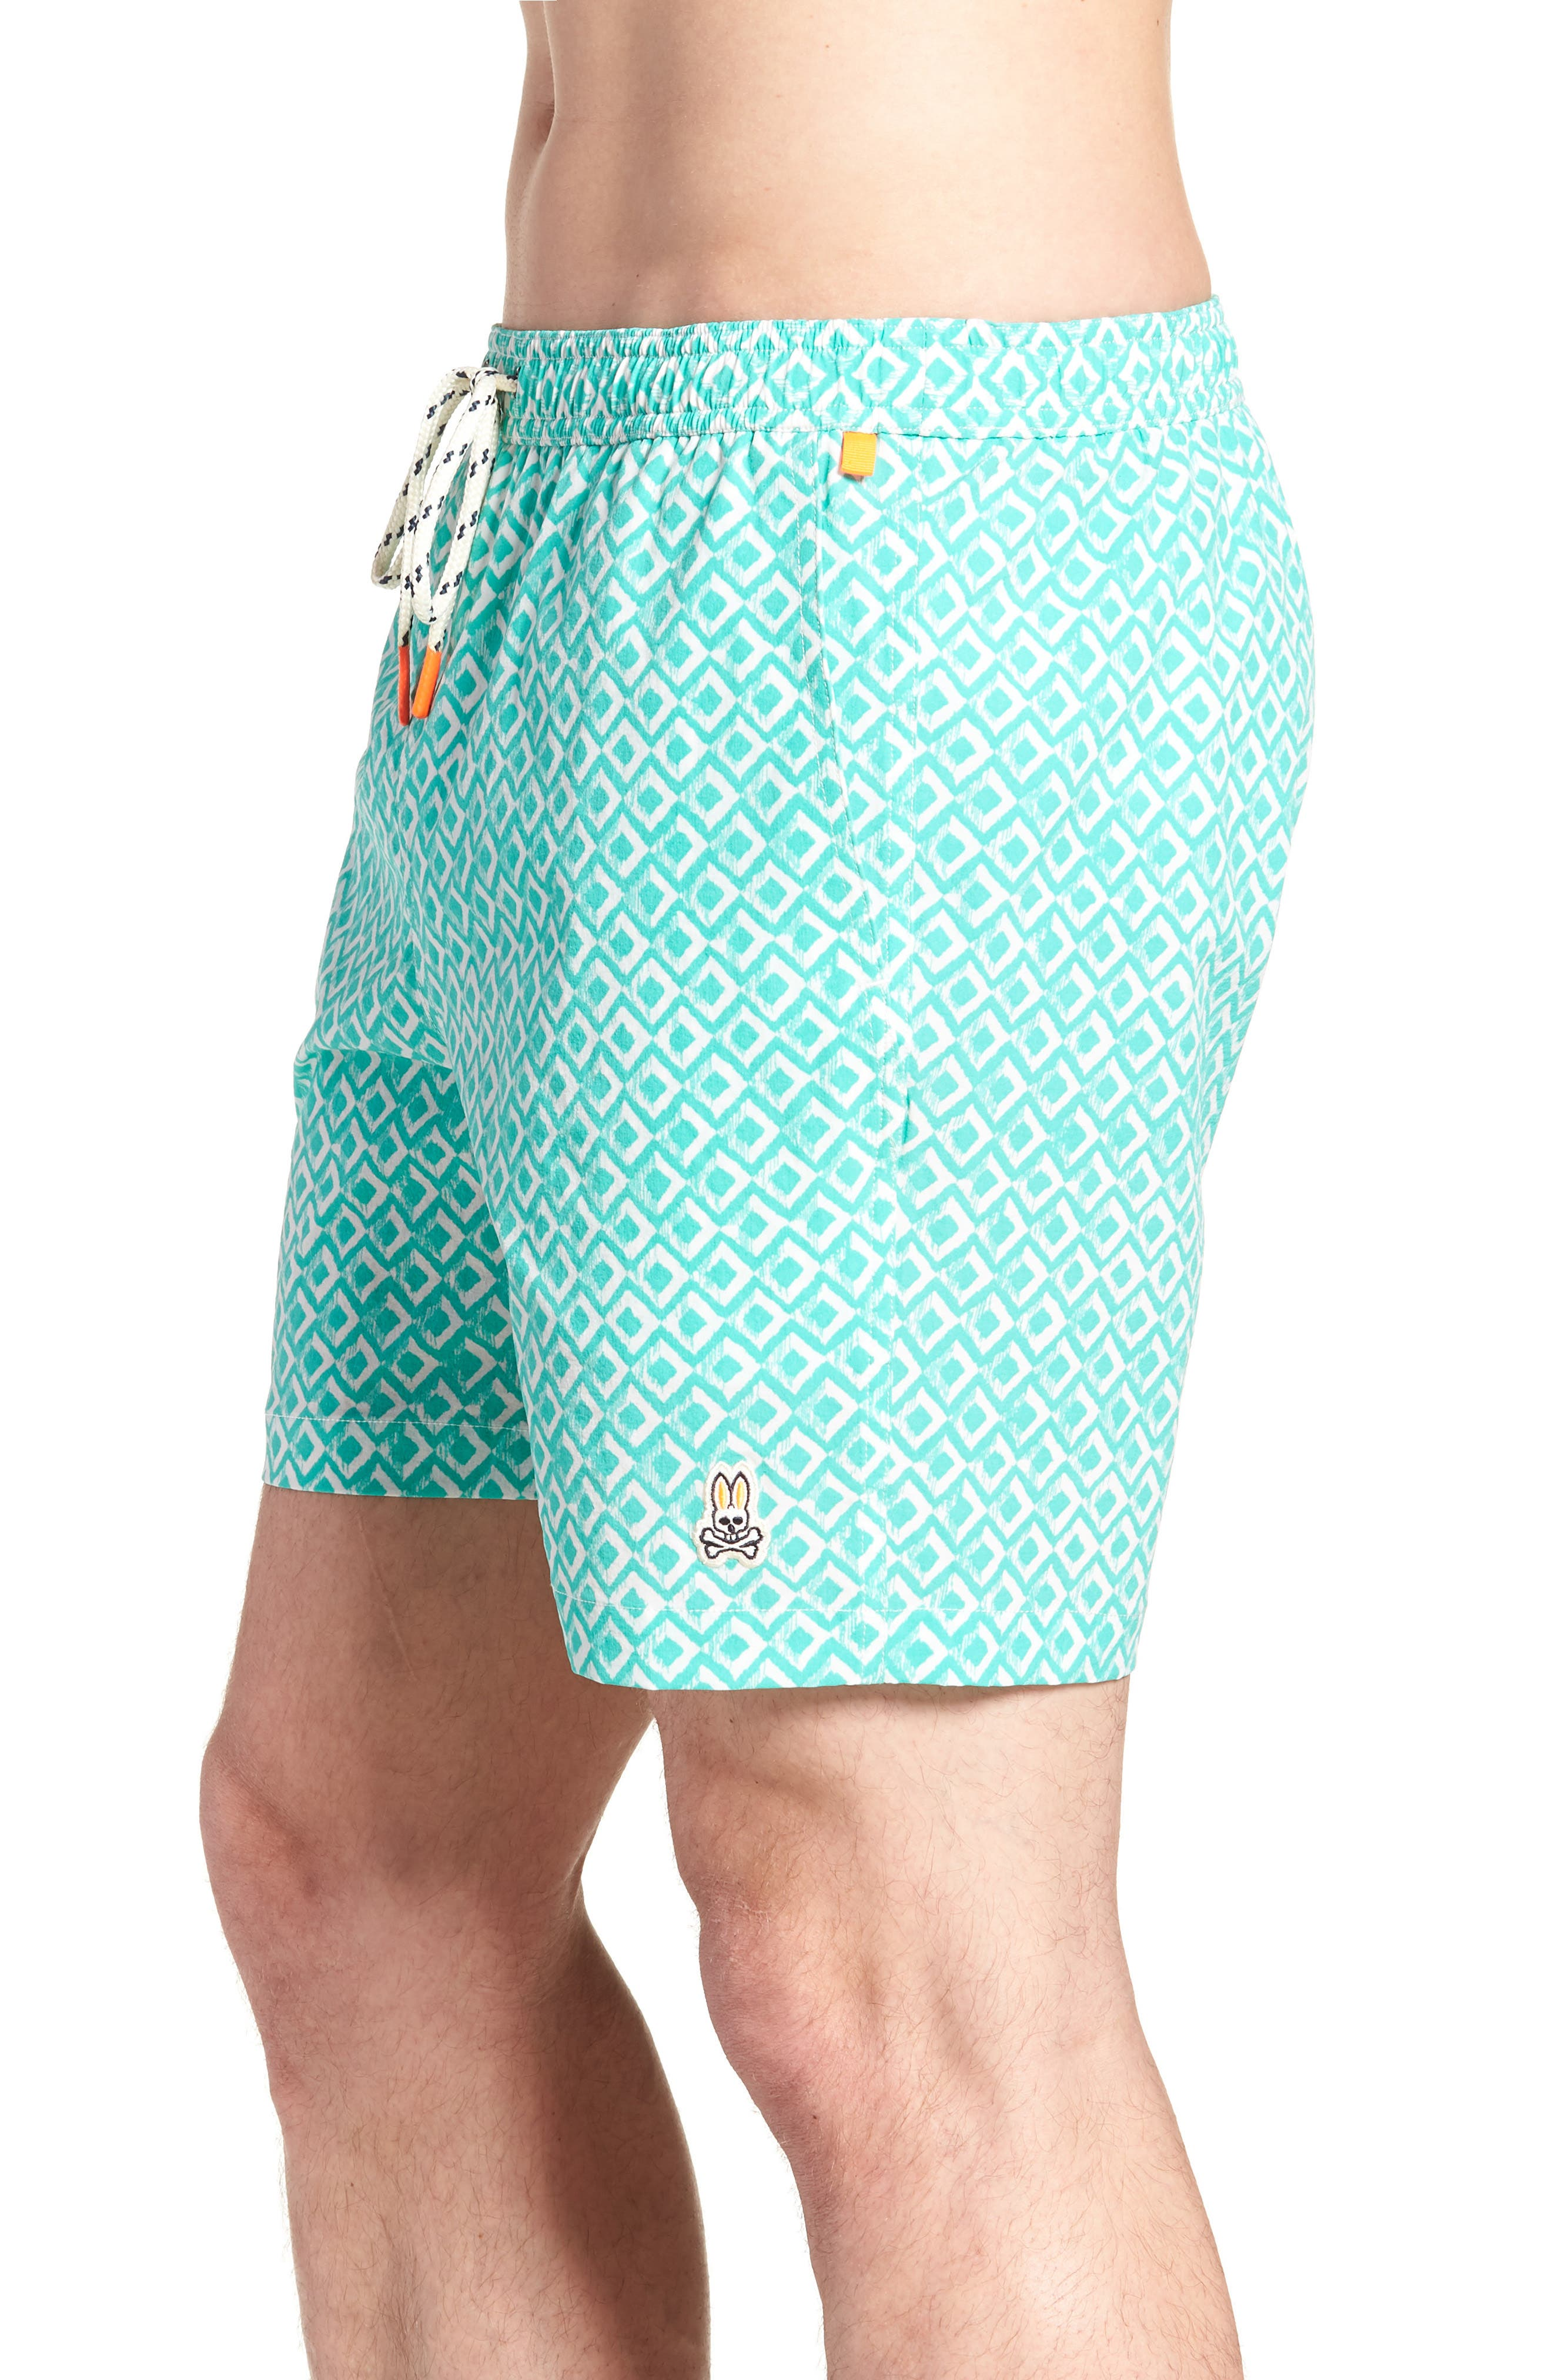 Drippy Diamond Swim Trunks,                             Alternate thumbnail 3, color,                             300